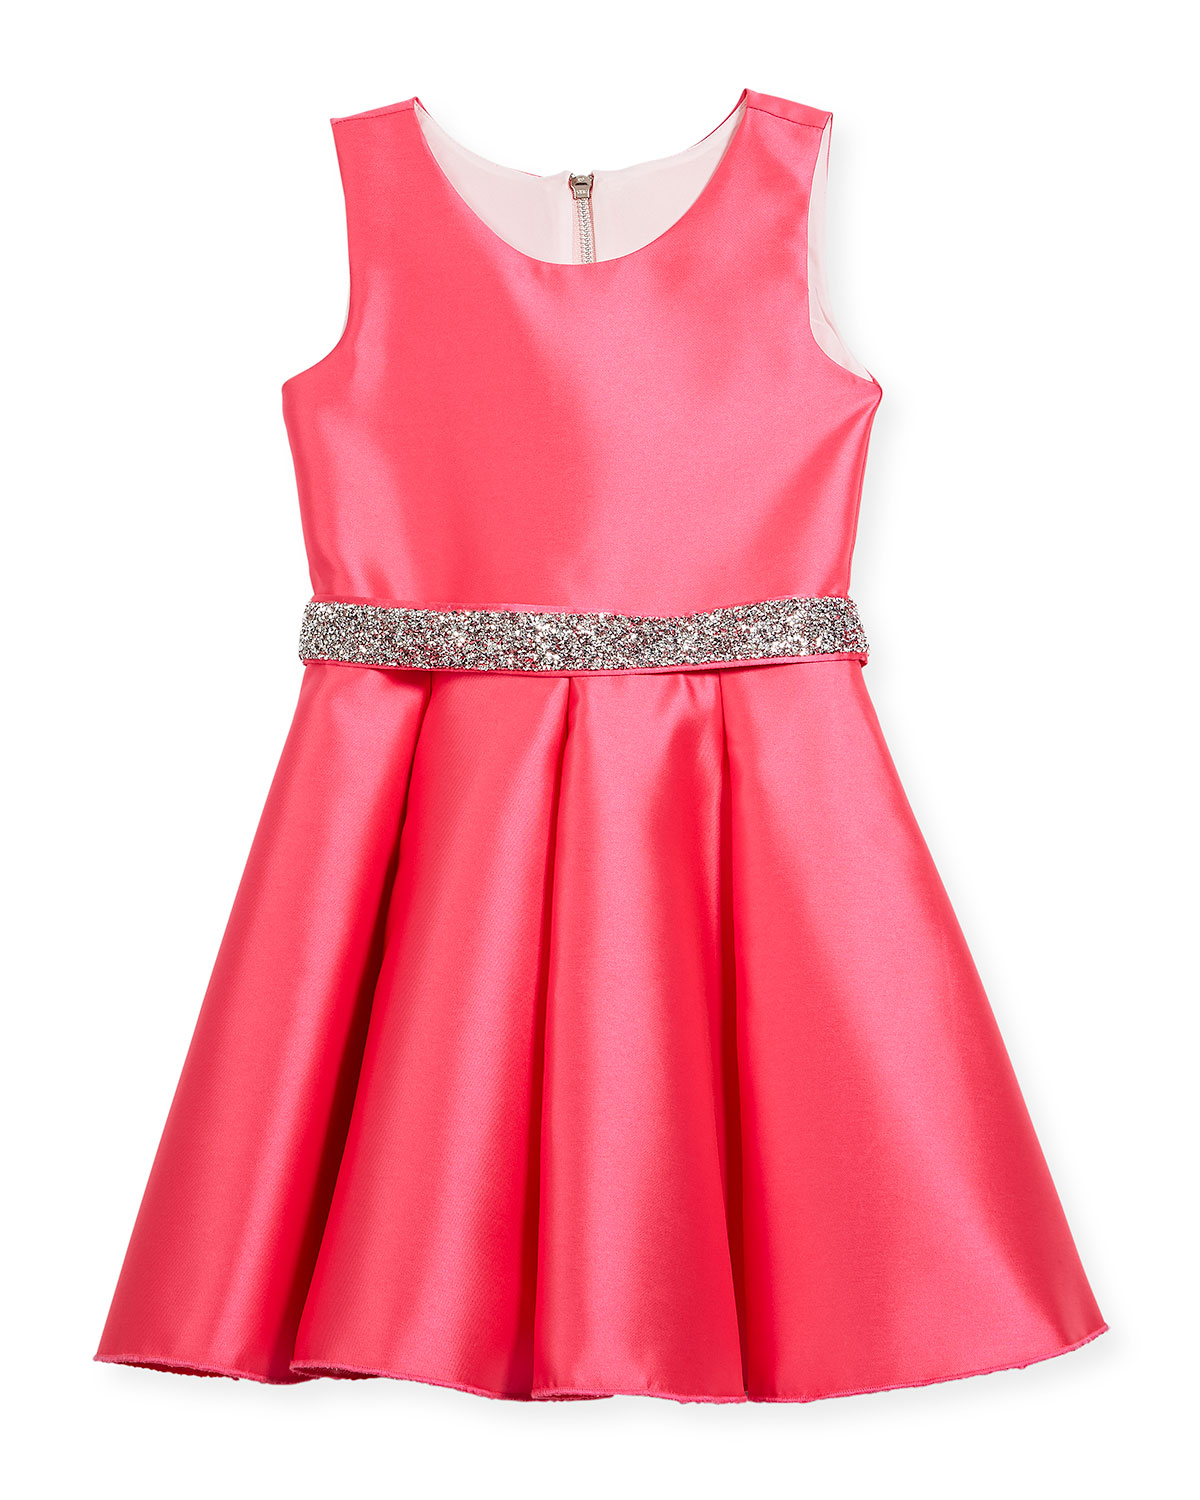 Matte Sateen Swing Dress w/ Crystal Belt, Size 7-16